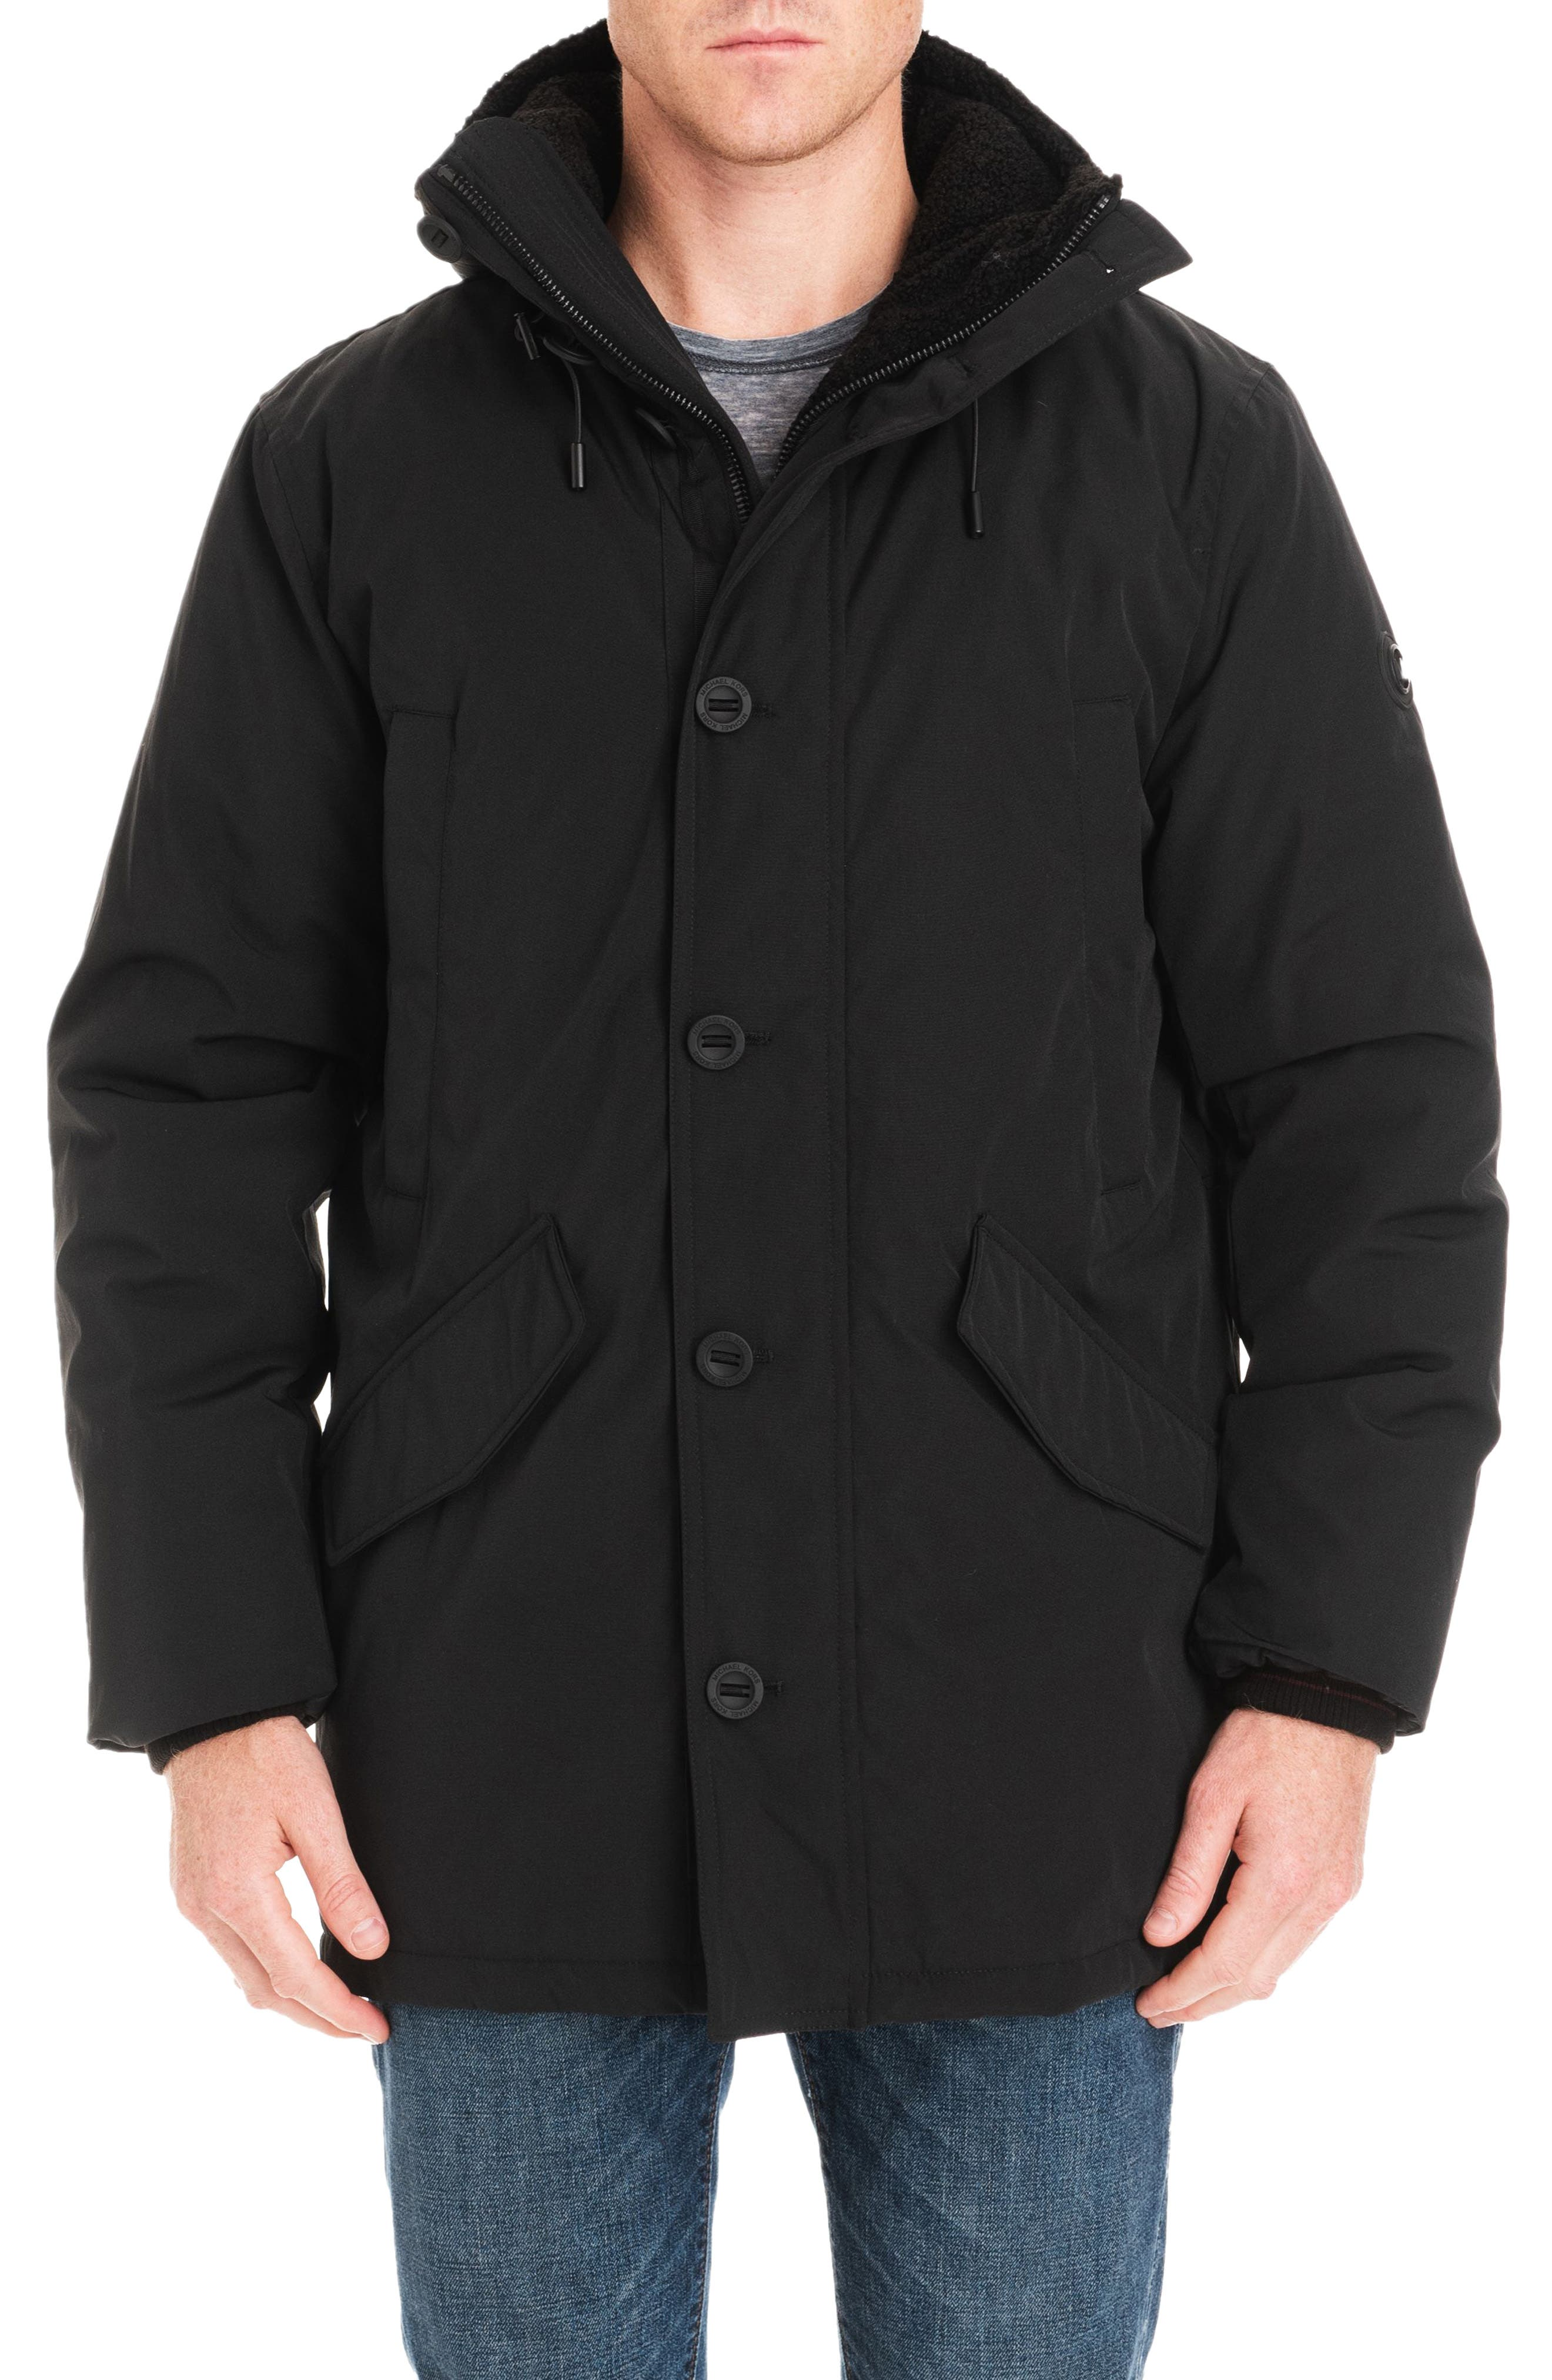 Lafayette Water Resistant Coat with Faux Shearling Lining,                             Main thumbnail 1, color,                             BLACK